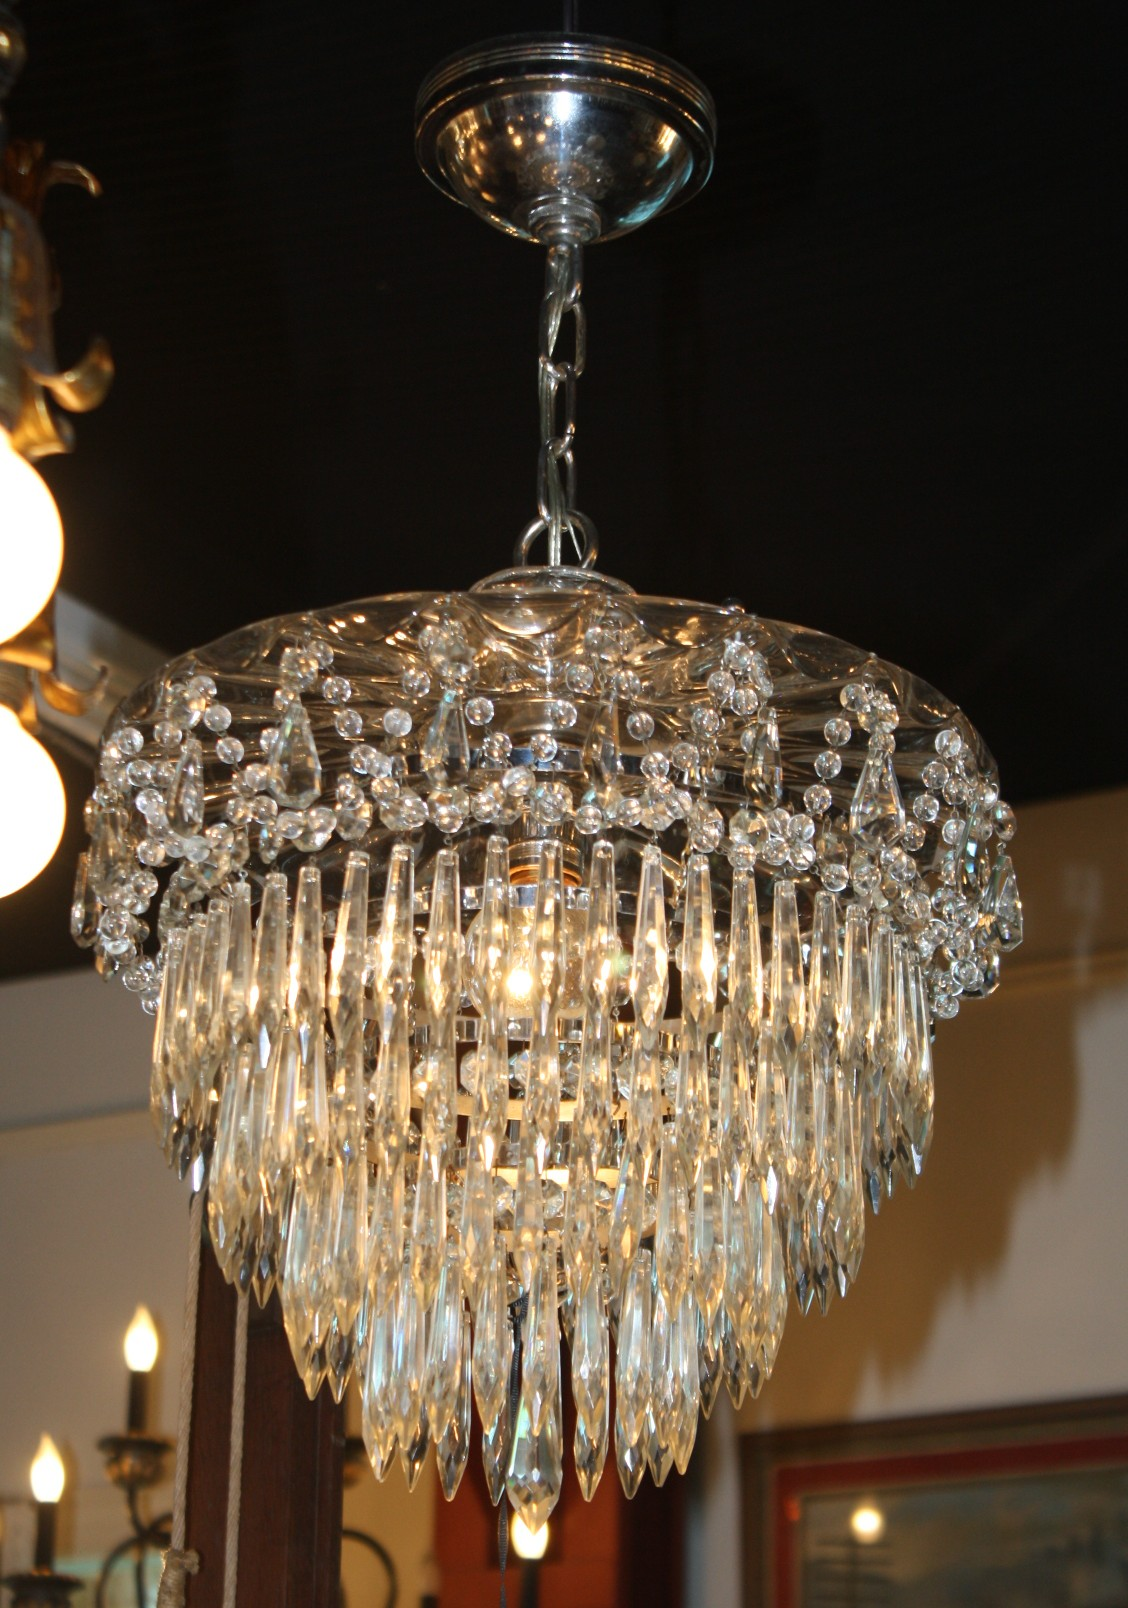 Sparkling glass top crystal chadelier is very unique for sale classifieds - Unique crystal chandeliers ...